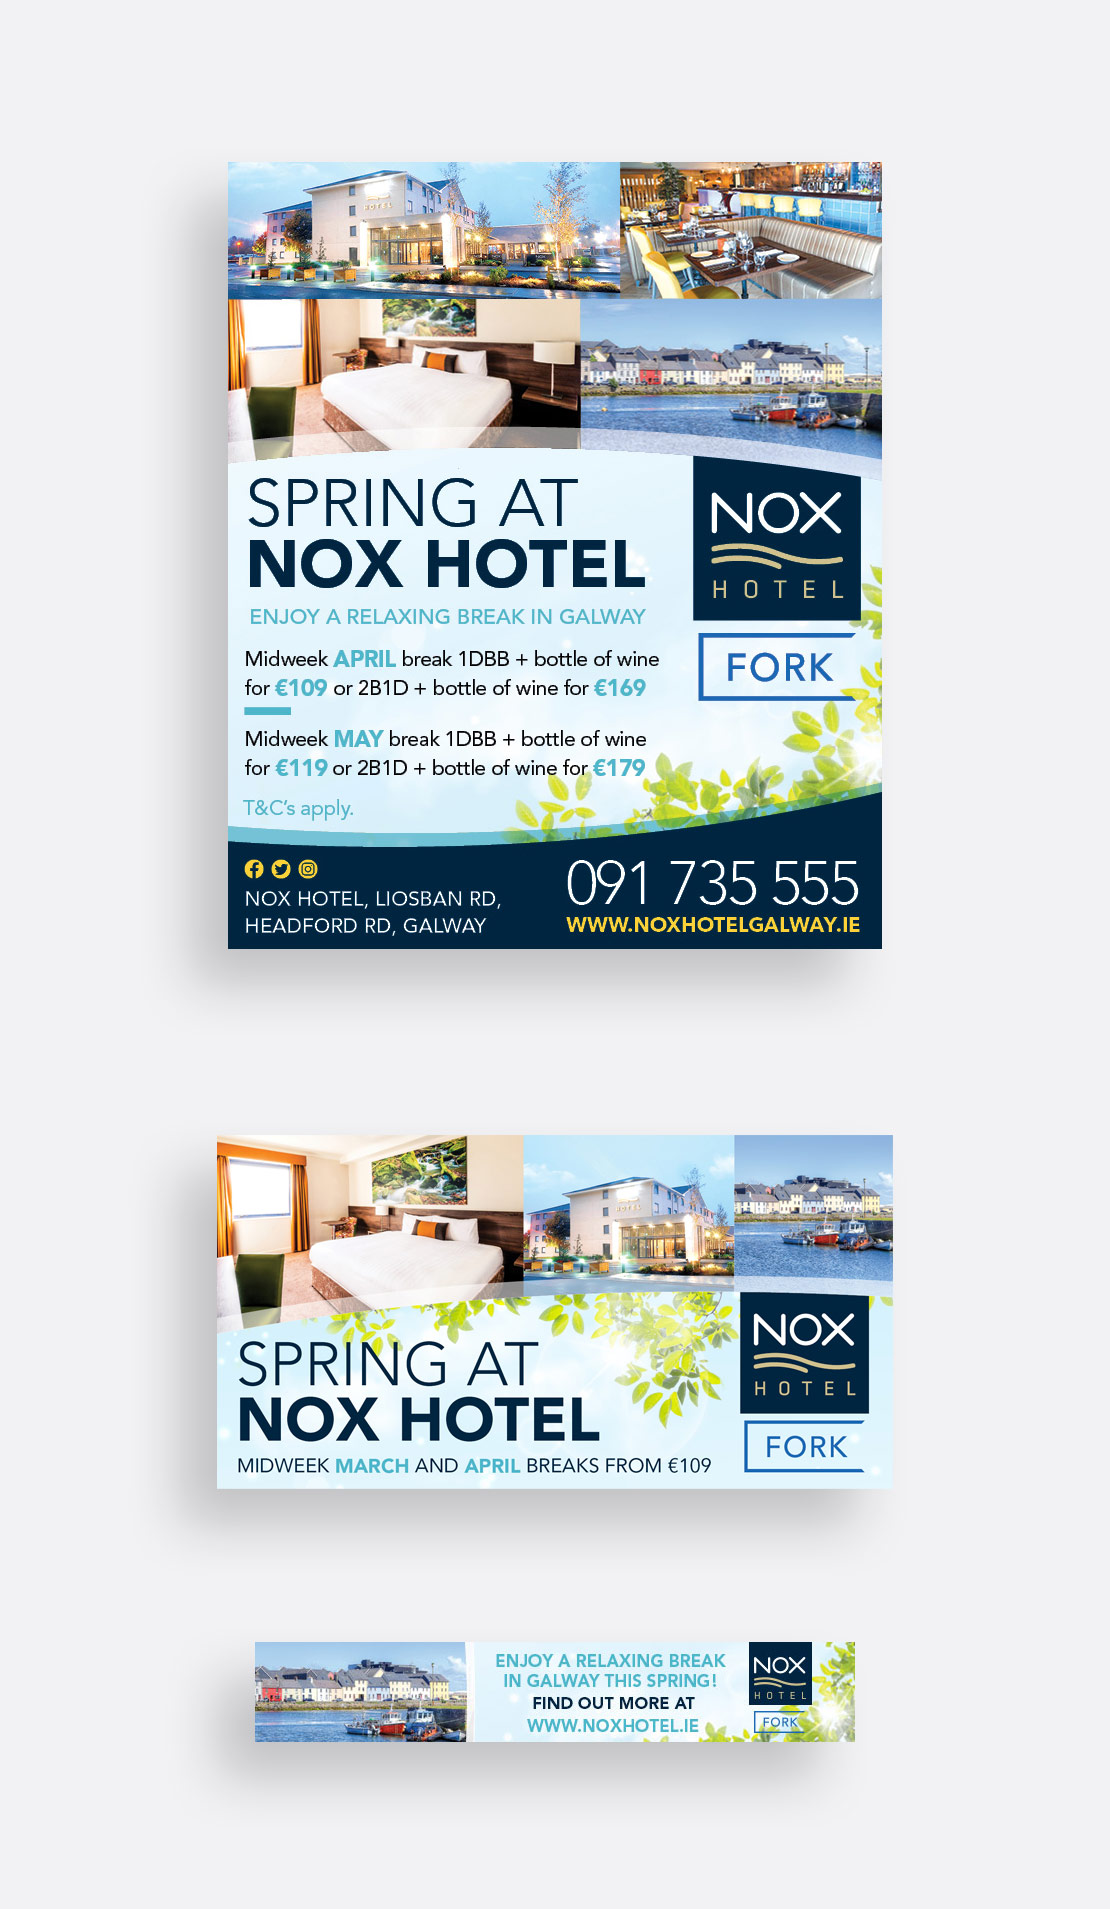 Nox Hotel Christmas Spring print, social media and online advertising campaign